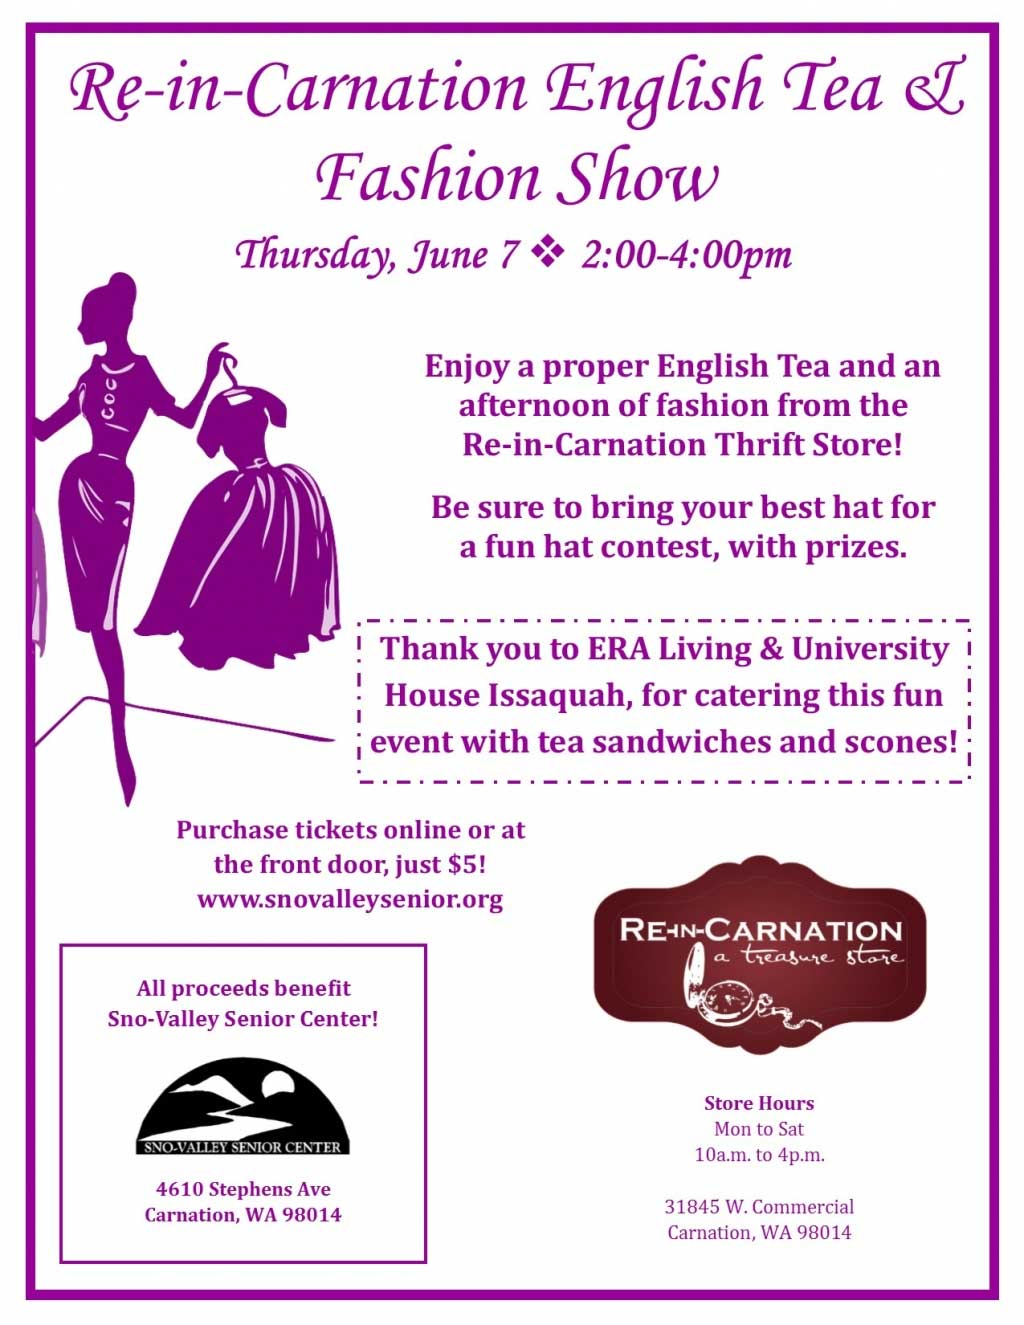 Re-in-Carnation Fashion Show and Tea